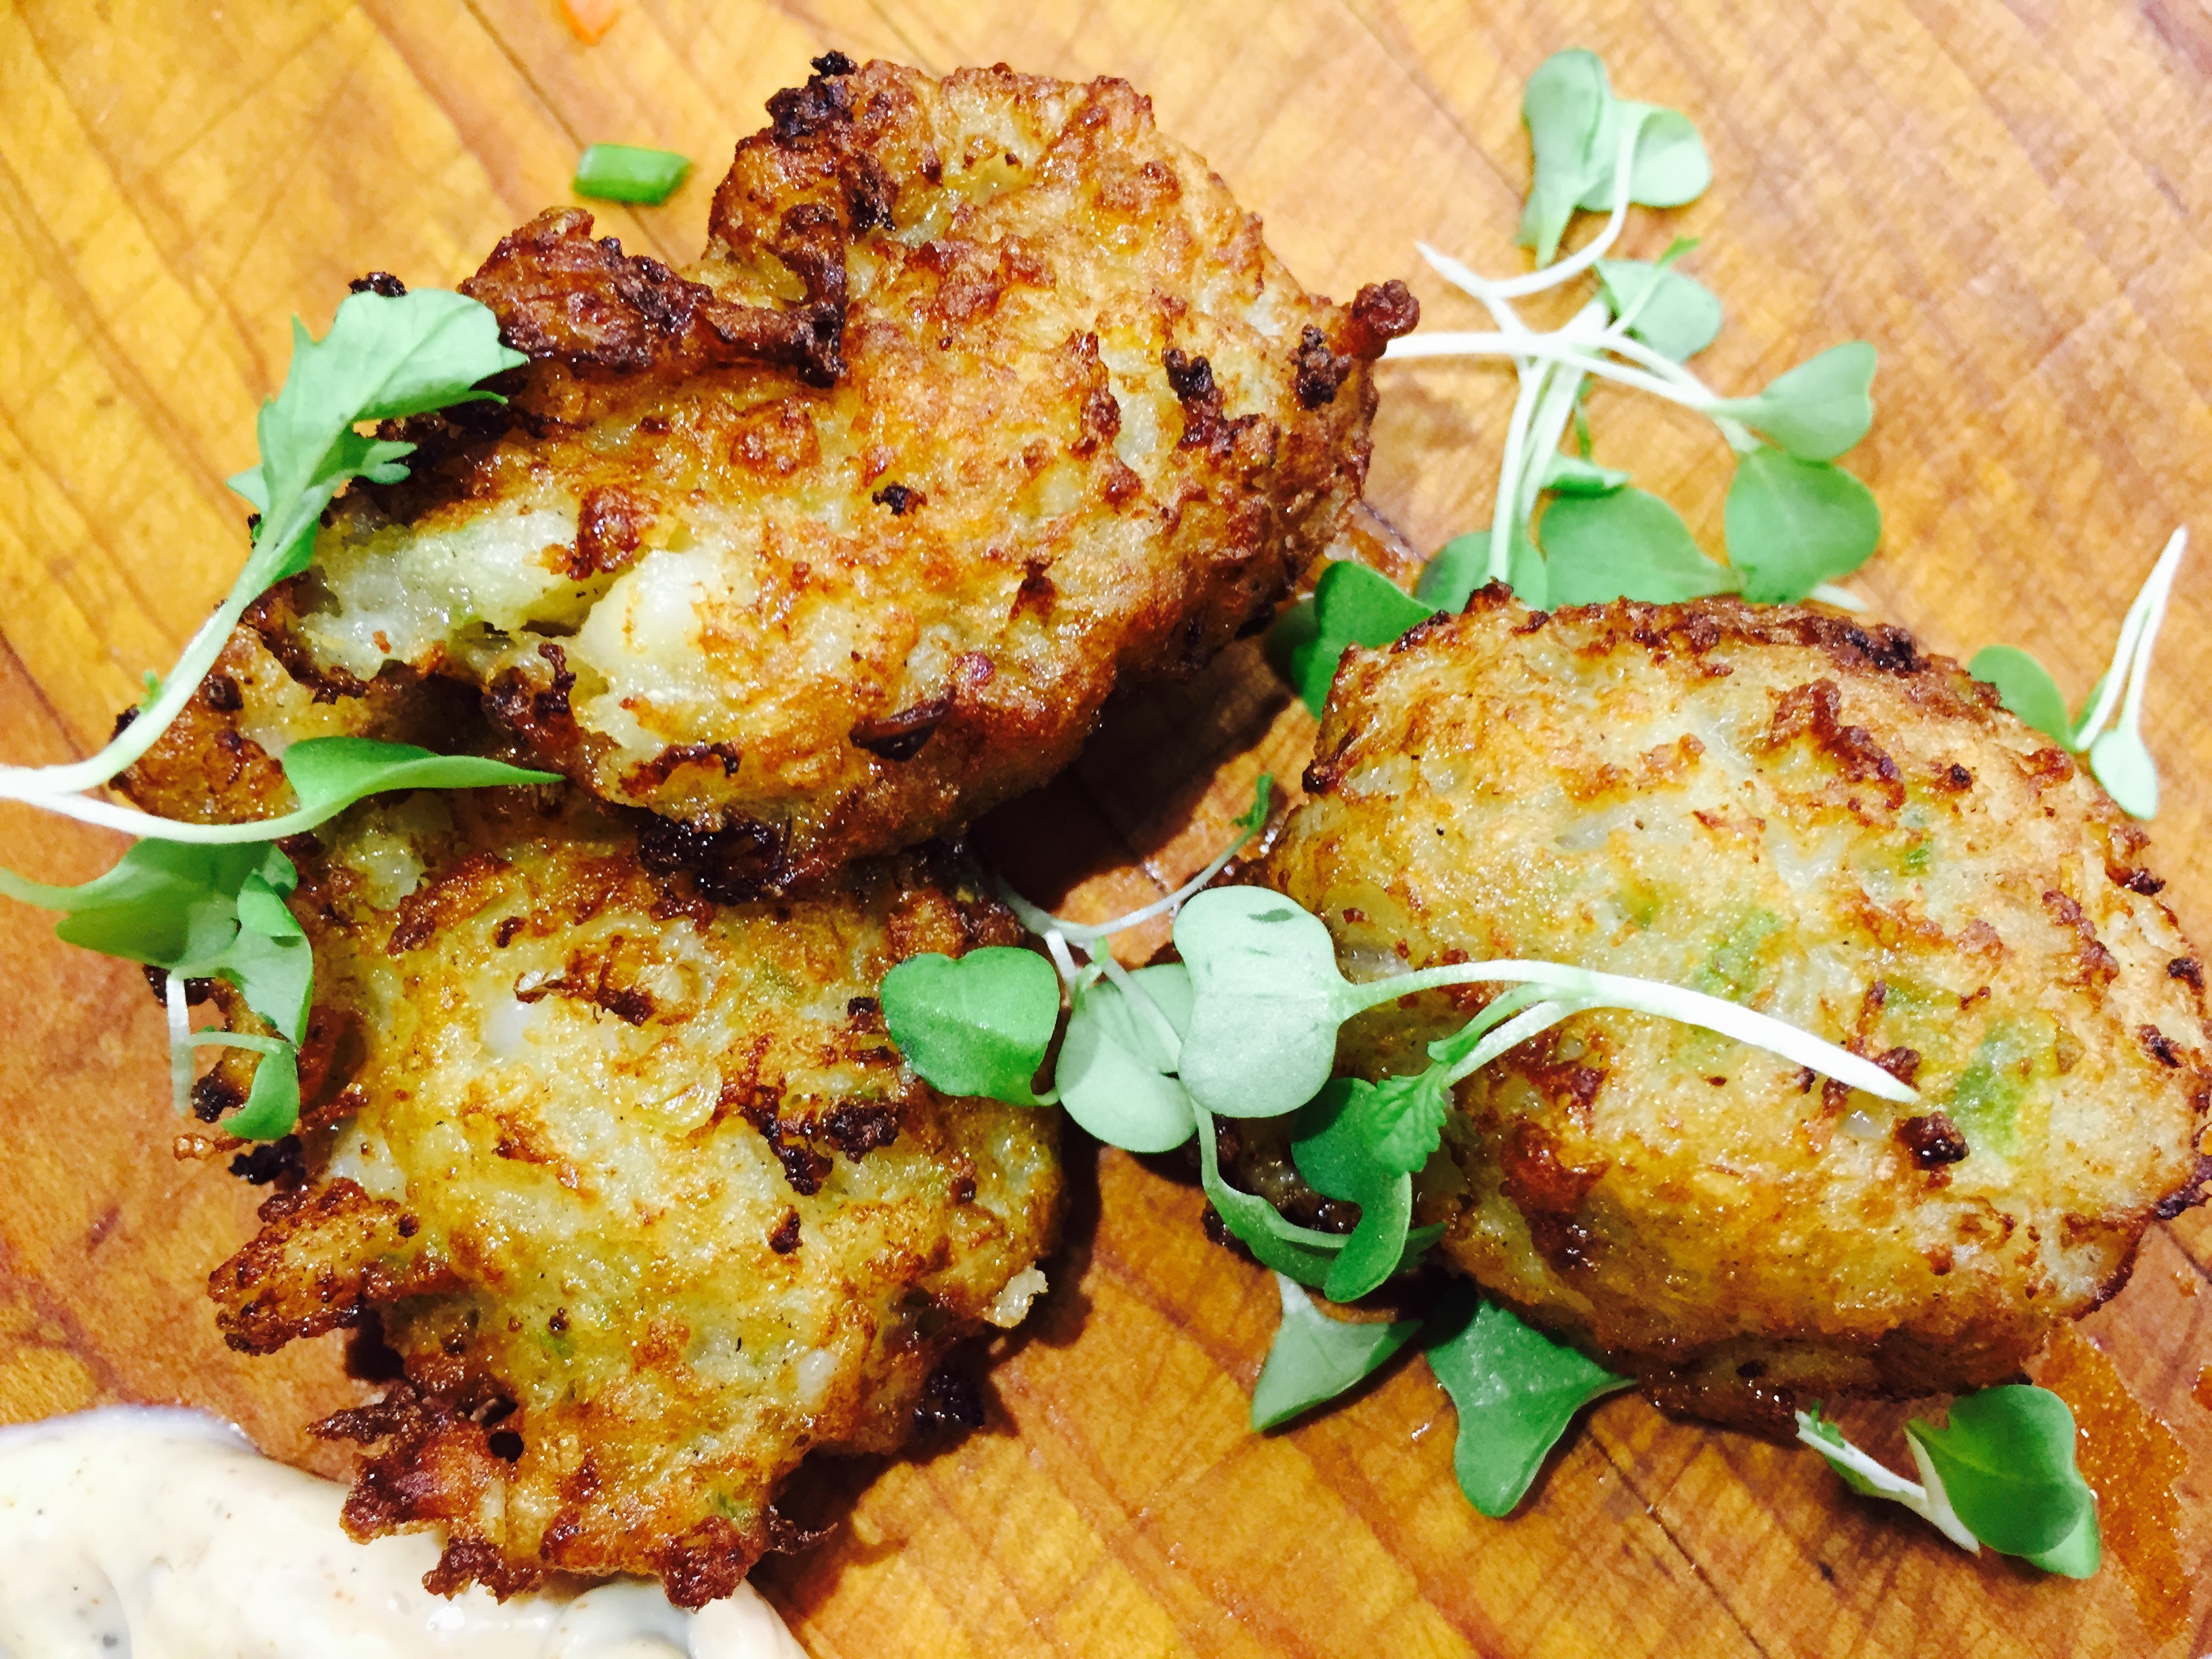 Almond Crusted Shrimp Cakes Topped with Lemon Parsley Aioli